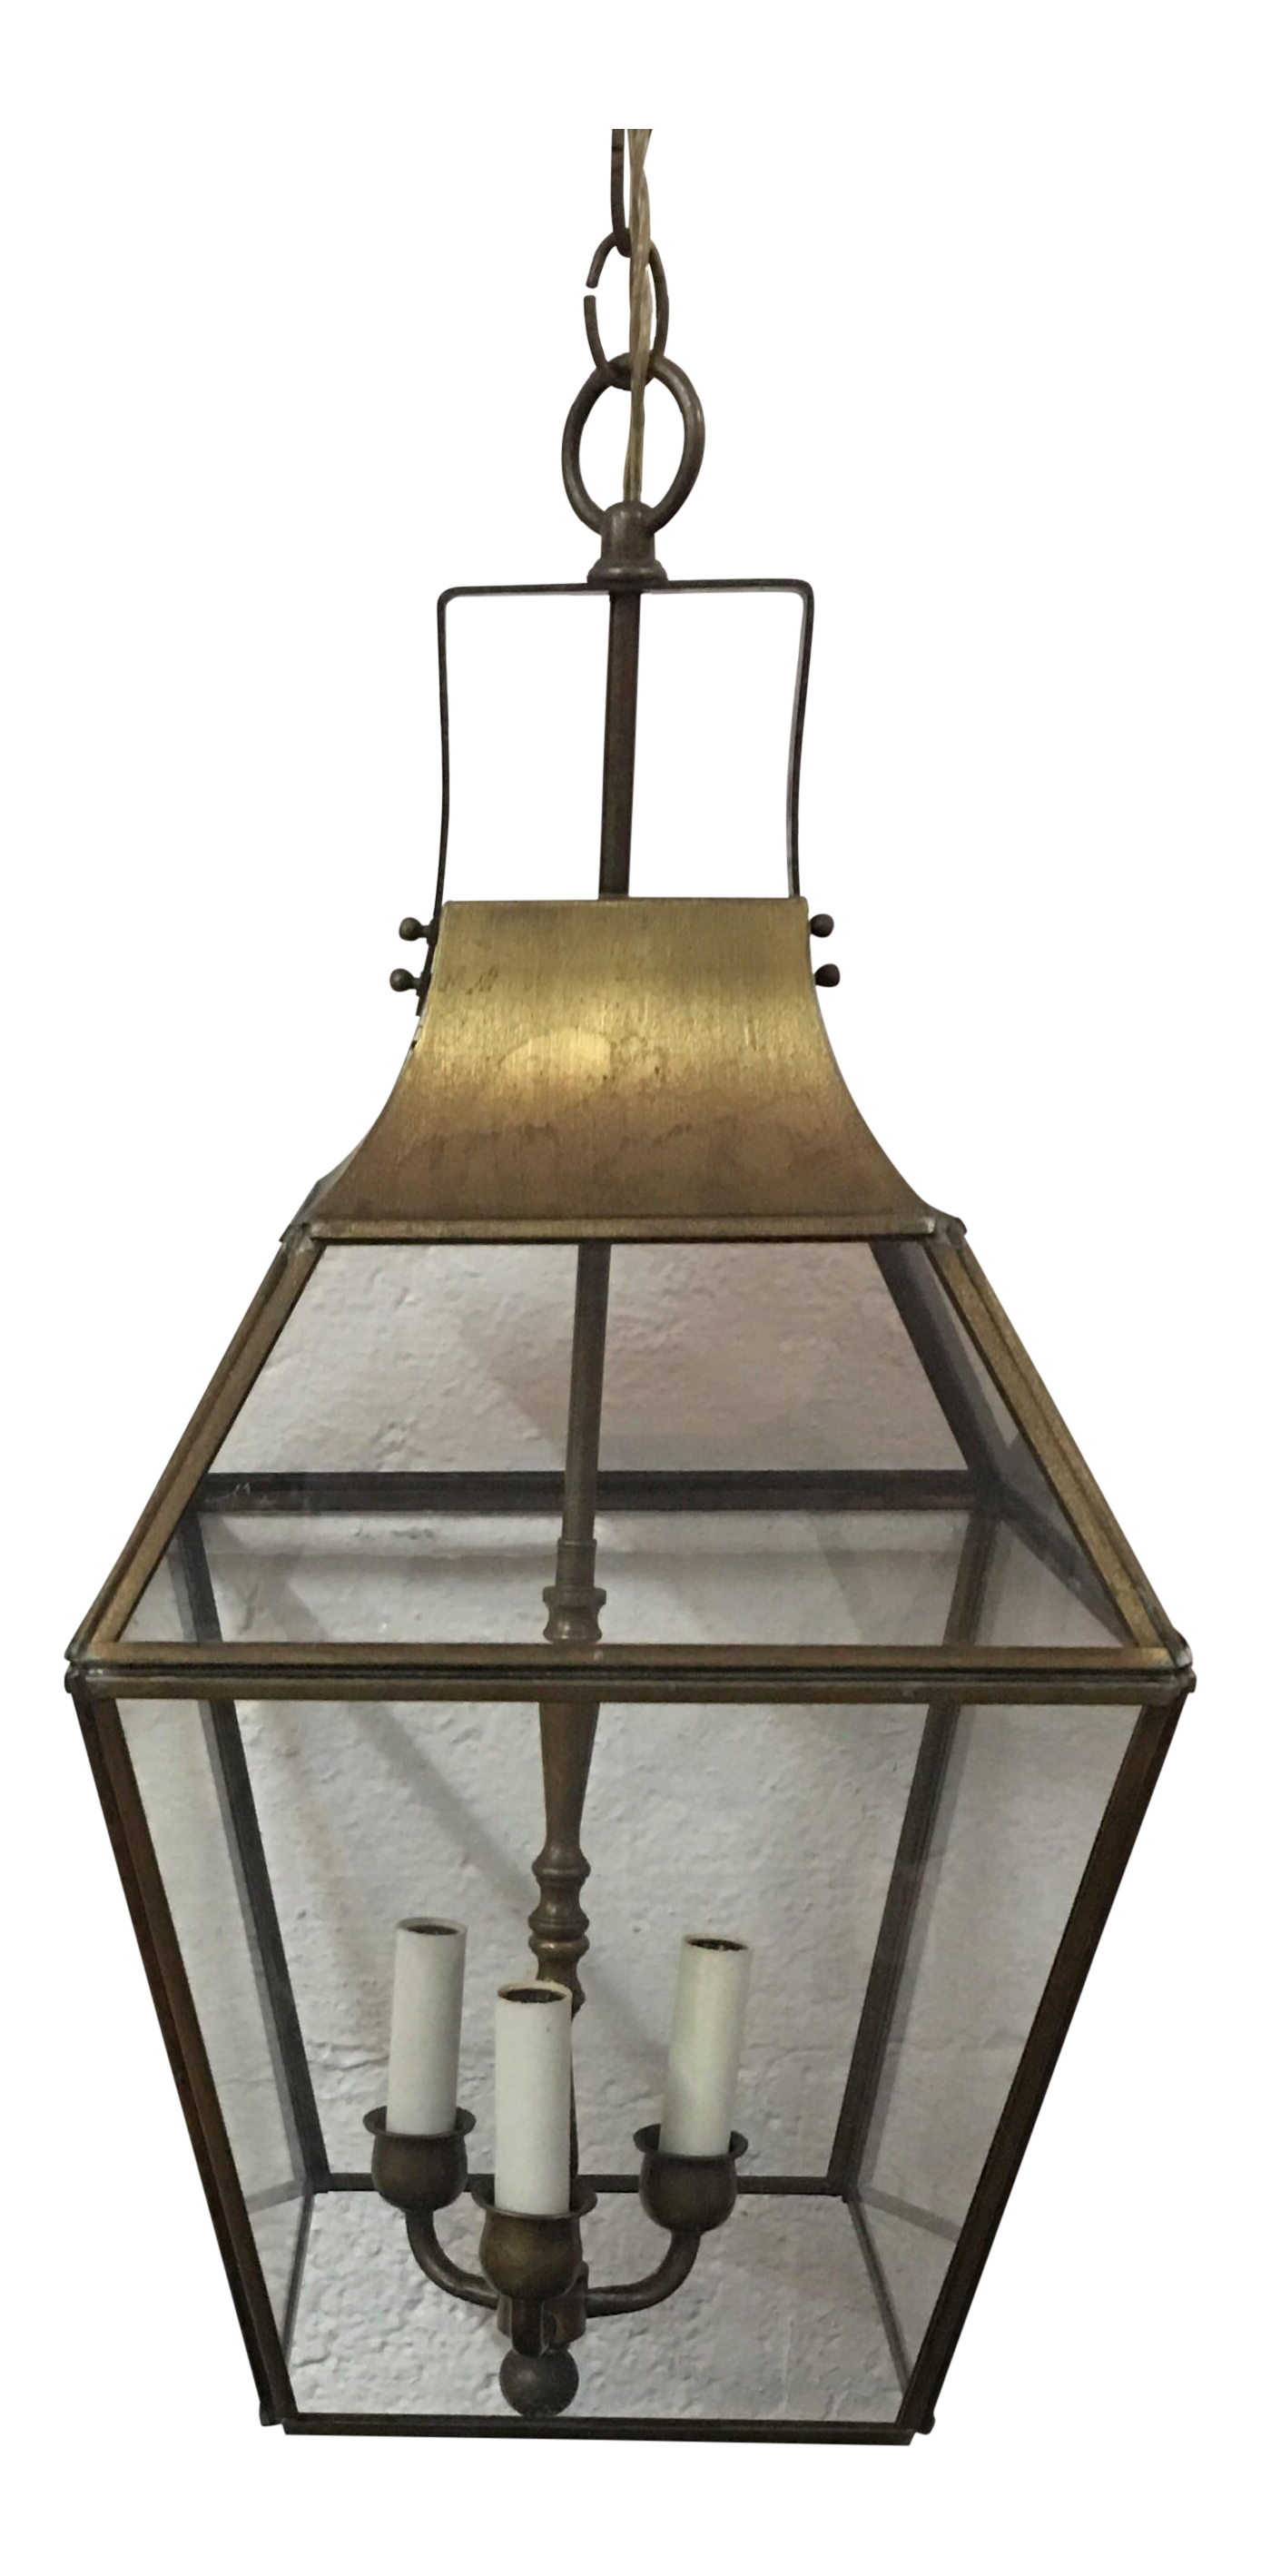 trends chandeliers chrome size pendant iron bronze entryway wood flush entry light style semi marvelous high giant lantern for hallway chandelier ideas large entrance extra drop lighting door full foyer contemporary of outdoor amusing black great and modern fixture hall ceilings